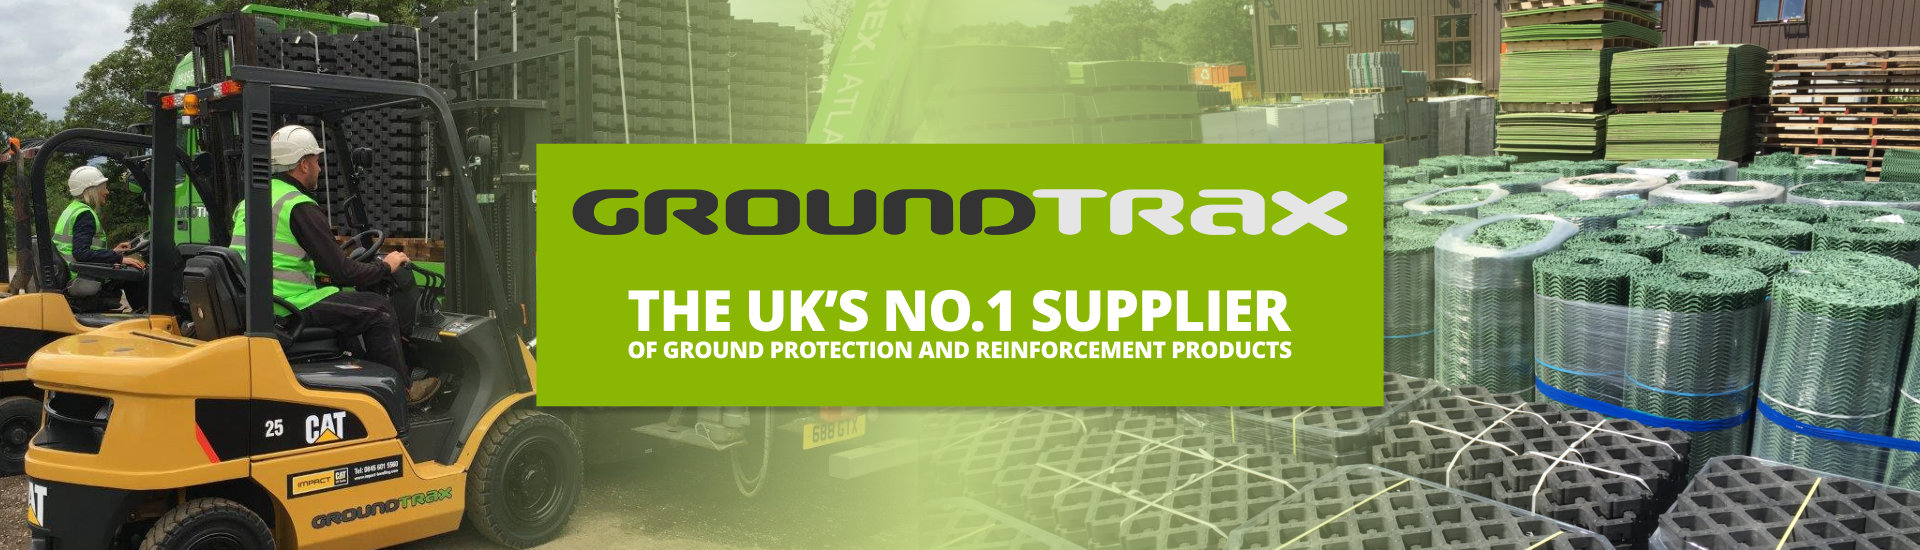 groundtrax-yard-banner